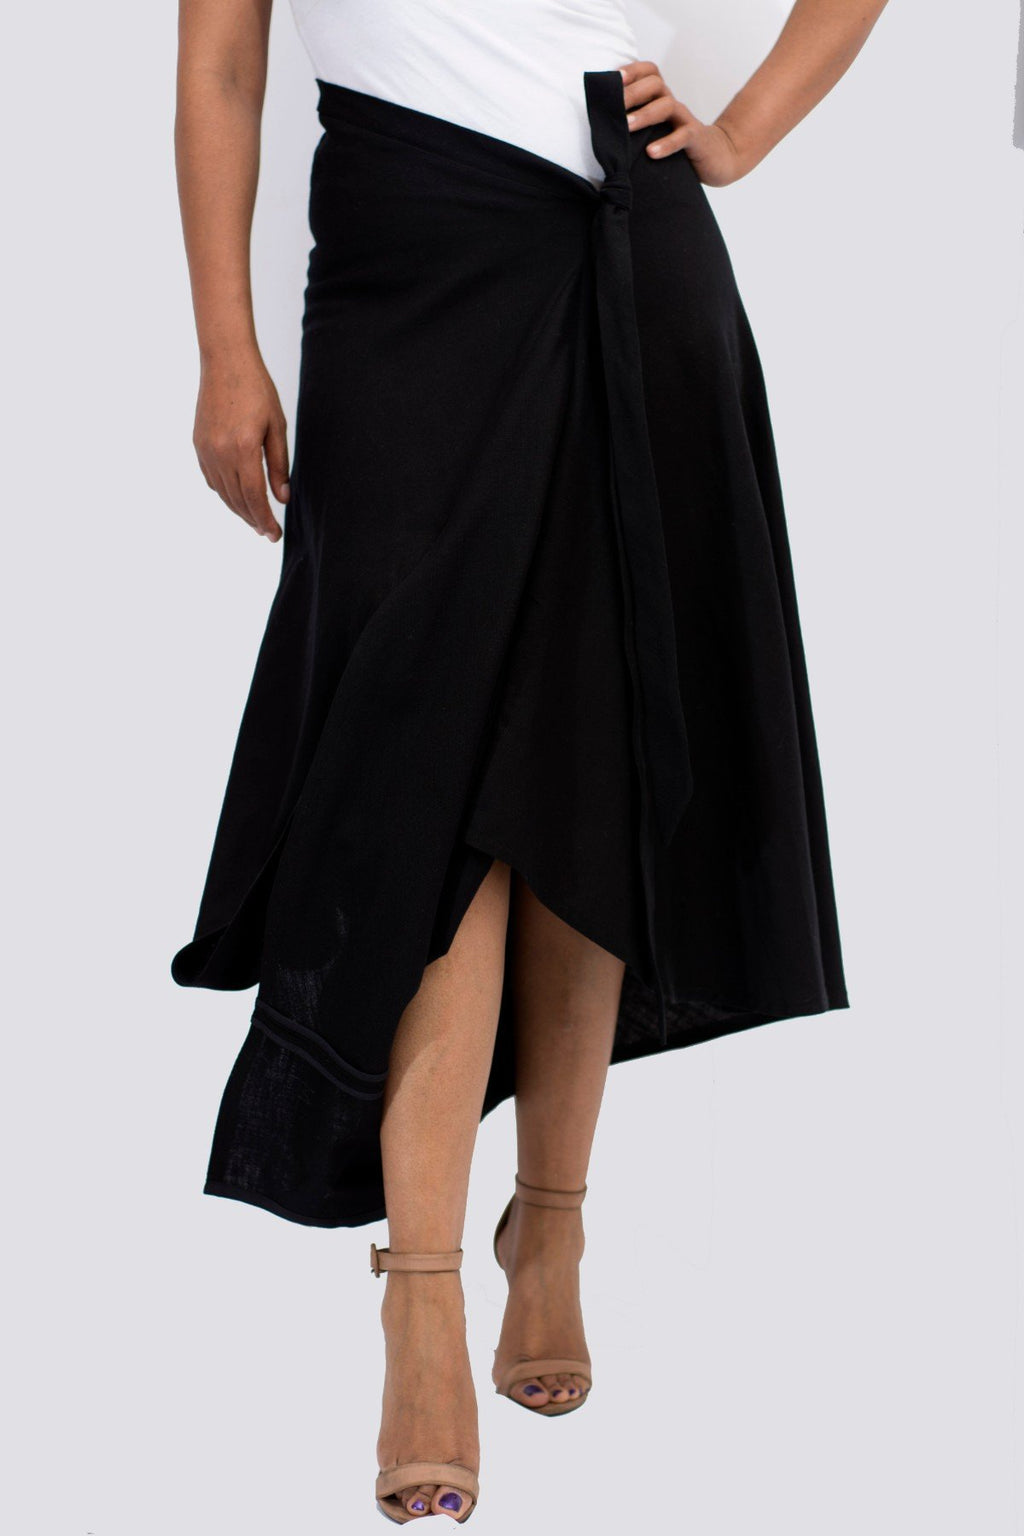 Jima Split Skirt